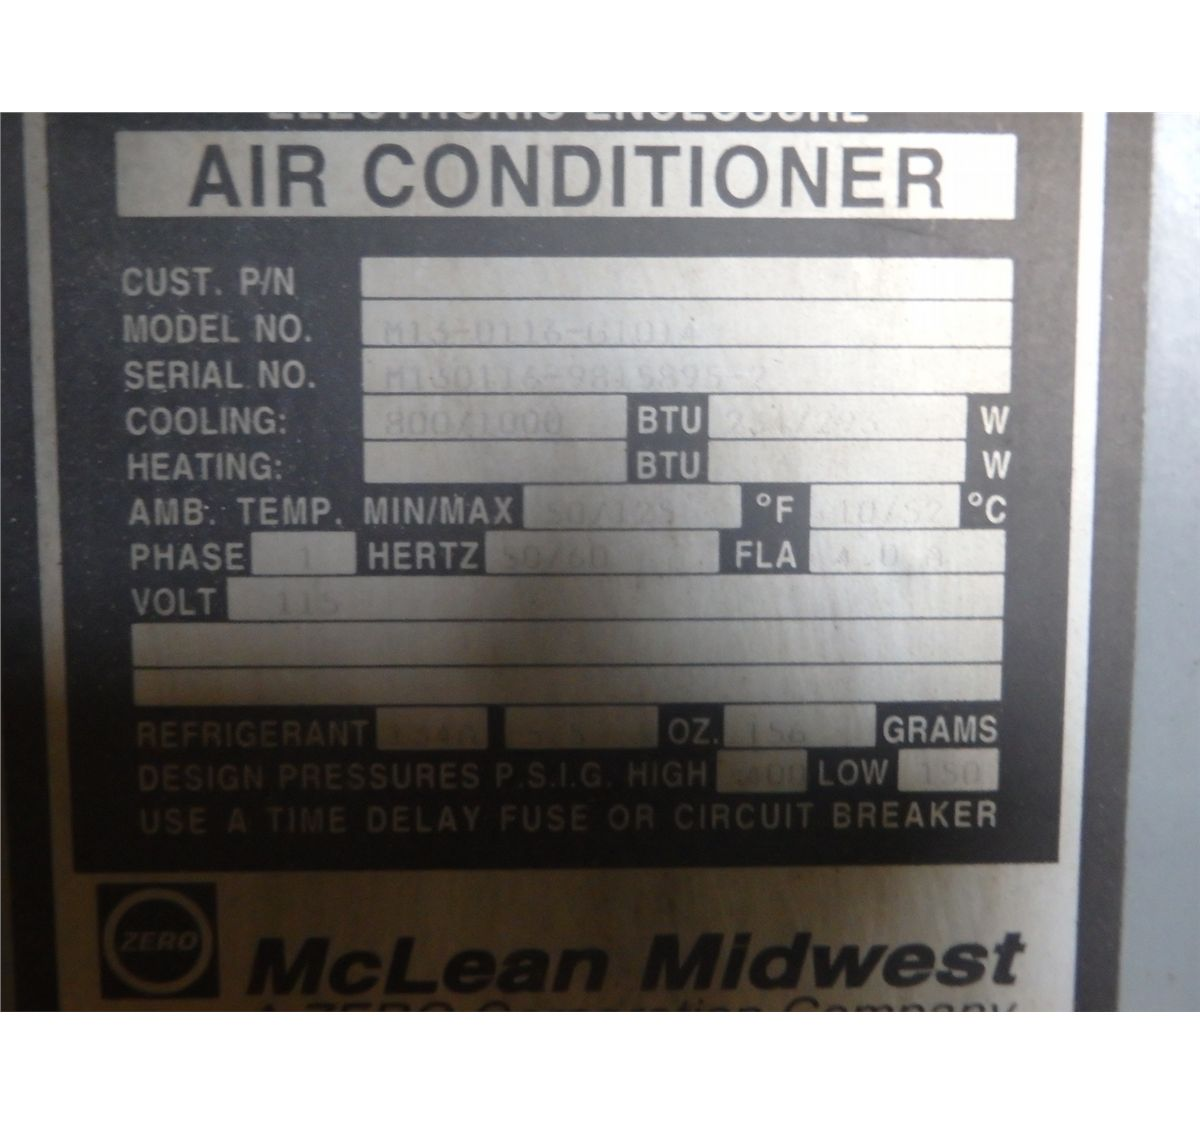 small resolution of  image 7 mclean midwest m13 0116 g1014 electrical box chiller air conditioner